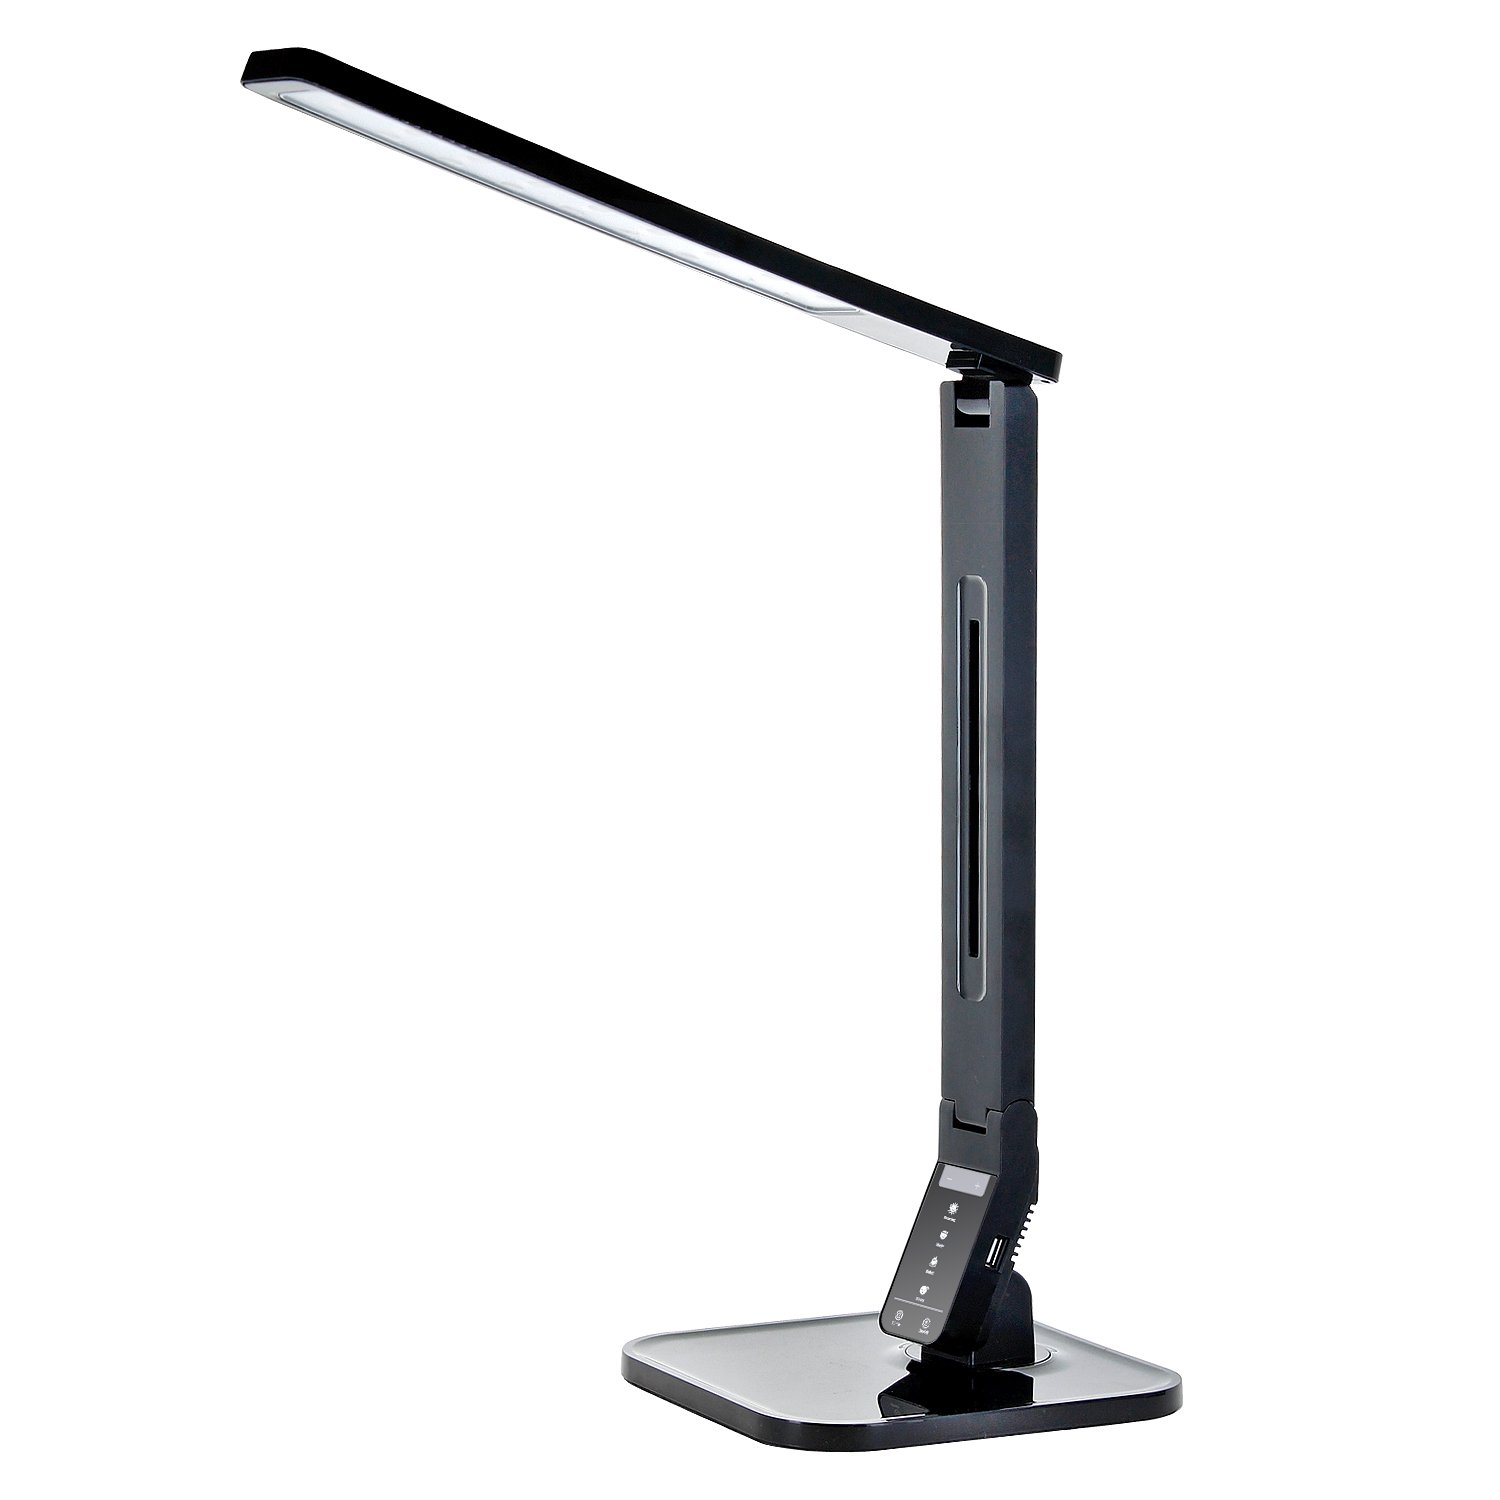 Tenergy 11W Dimmable Desk Lamp with USB Charging Port, LED Adjustable Lighting for Reading, 5 Brightness Levels 4 Light Colors Table Light FY-0001